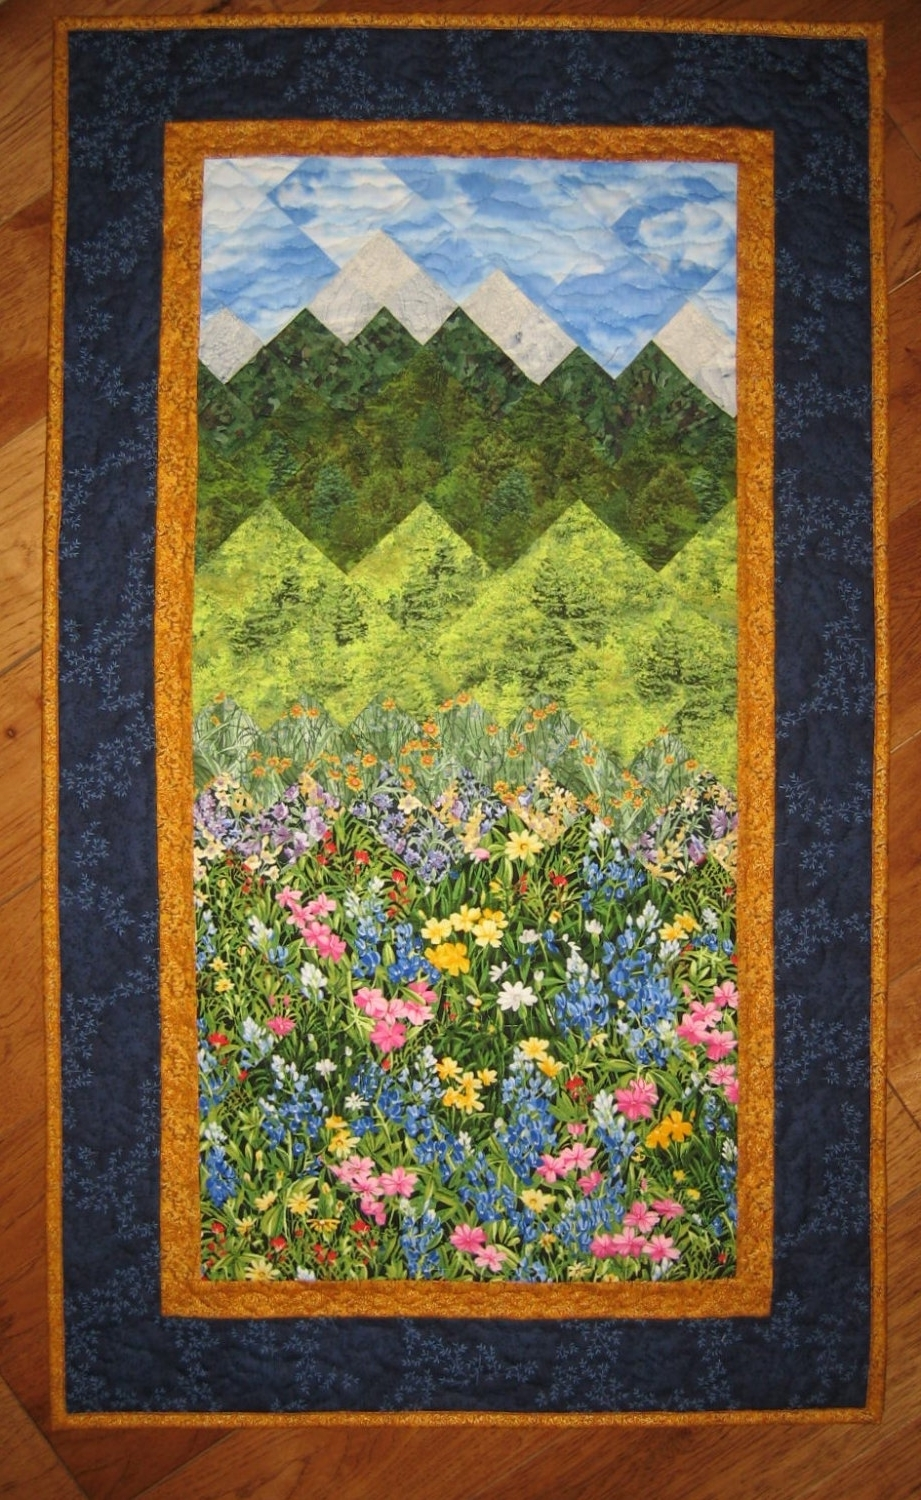 Quilt Fabric Wall Art Pertaining To Fashionable Summer Flowers And Mountains Art Quilt Fabric Wall Hanging Quilted (View 2 of 15)